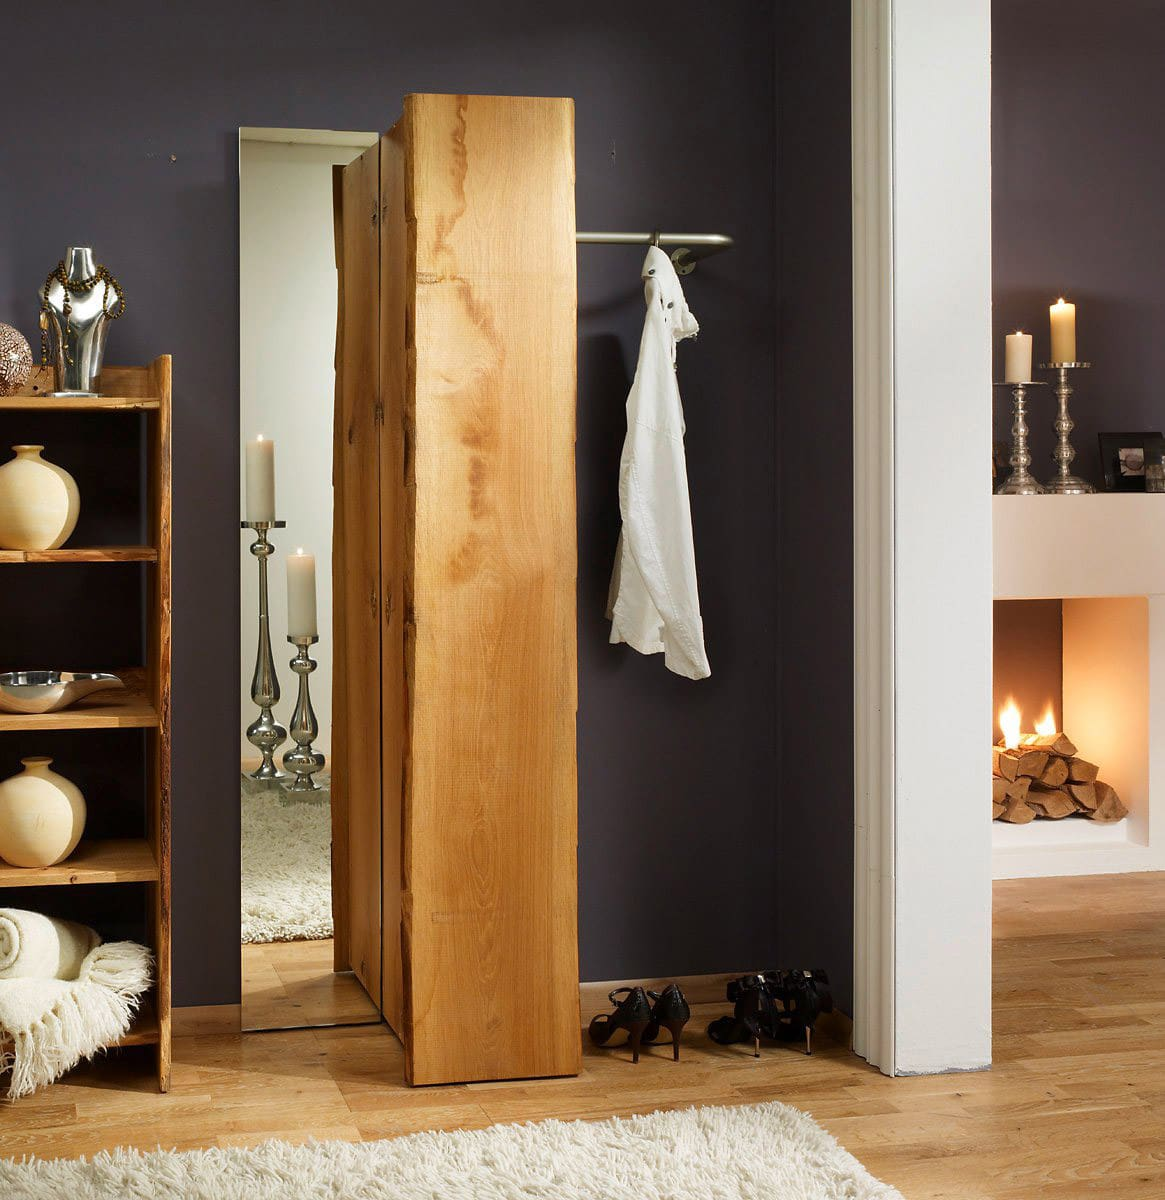 wandgarderobe eiche woodline massiv f r flur g nstig online kaufen pick up m bel. Black Bedroom Furniture Sets. Home Design Ideas